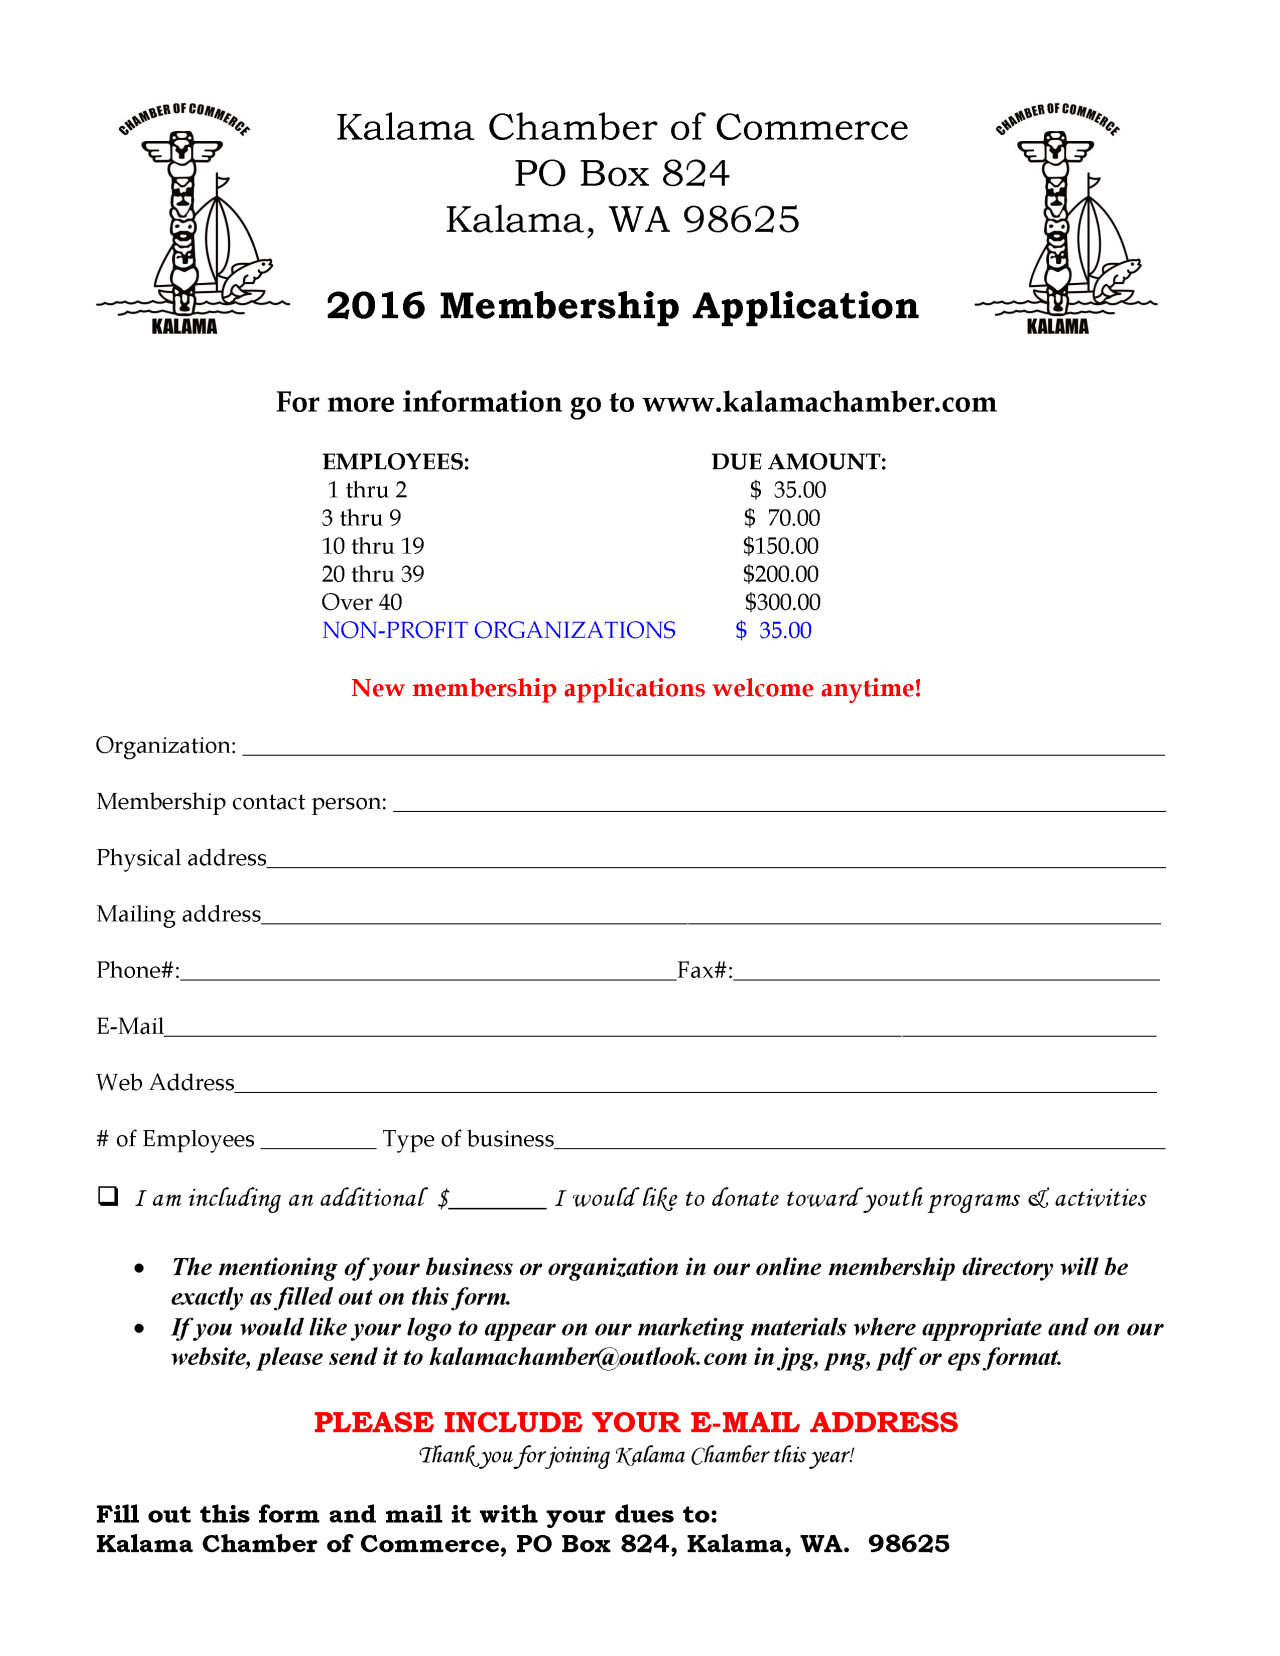 2016 Membership Application